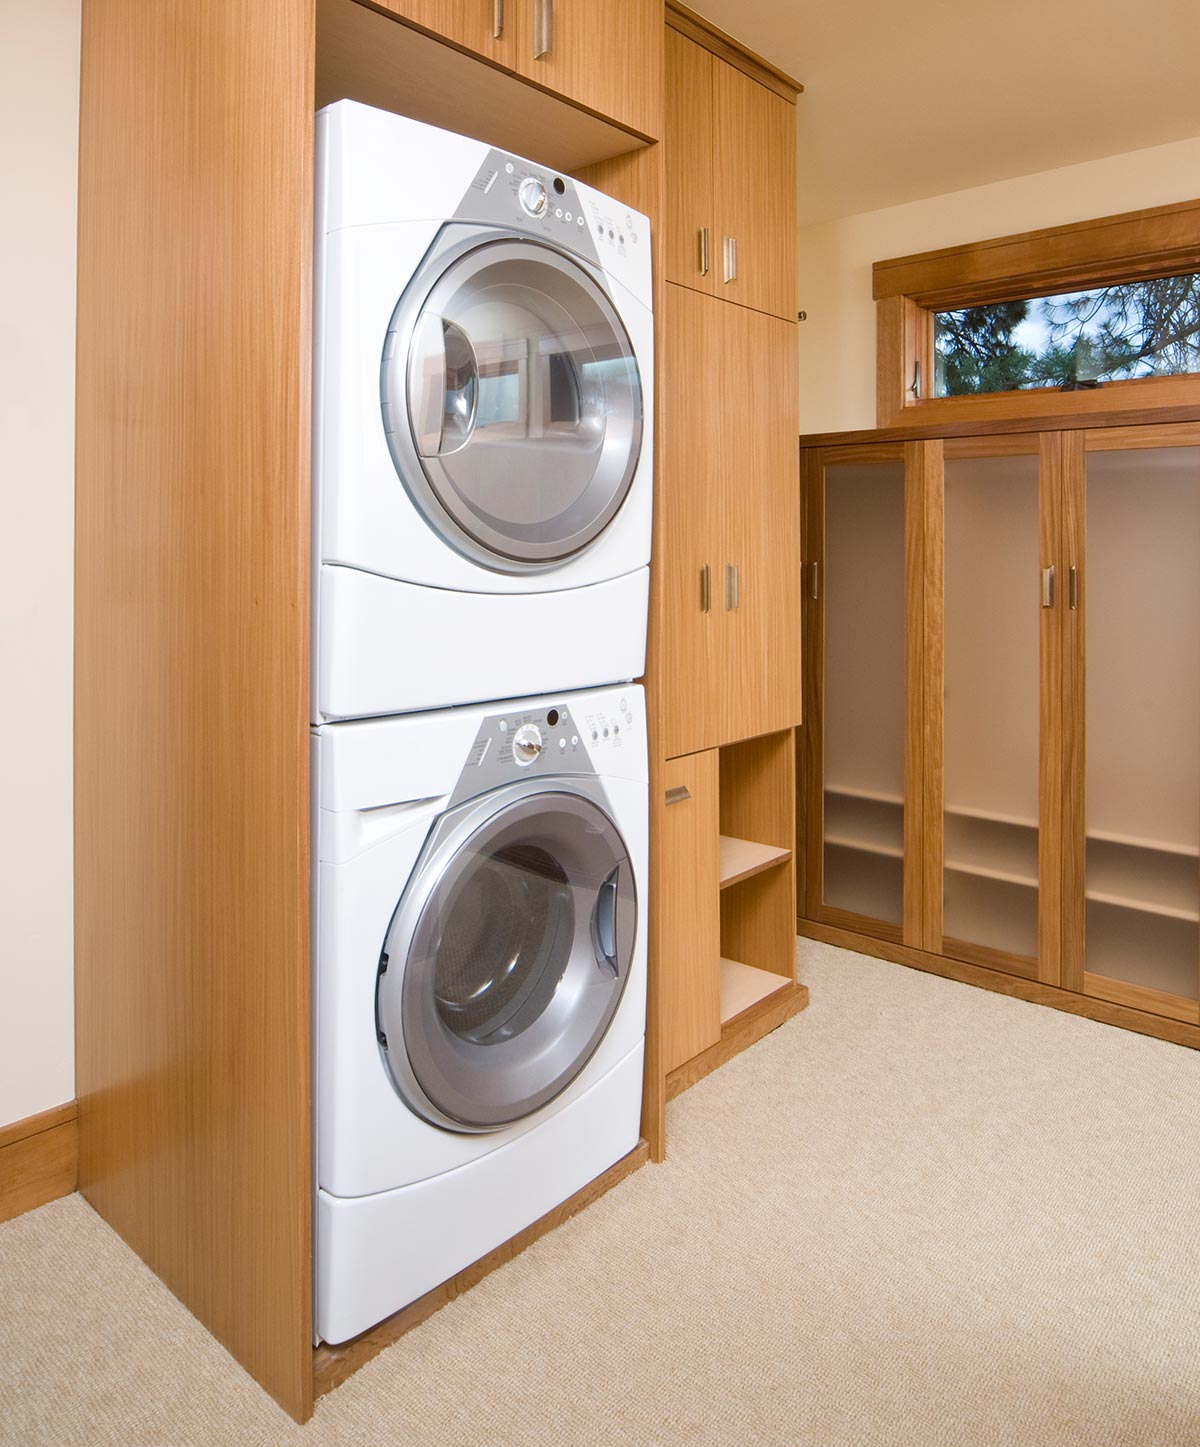 washer and dryer as amenities in rented properties